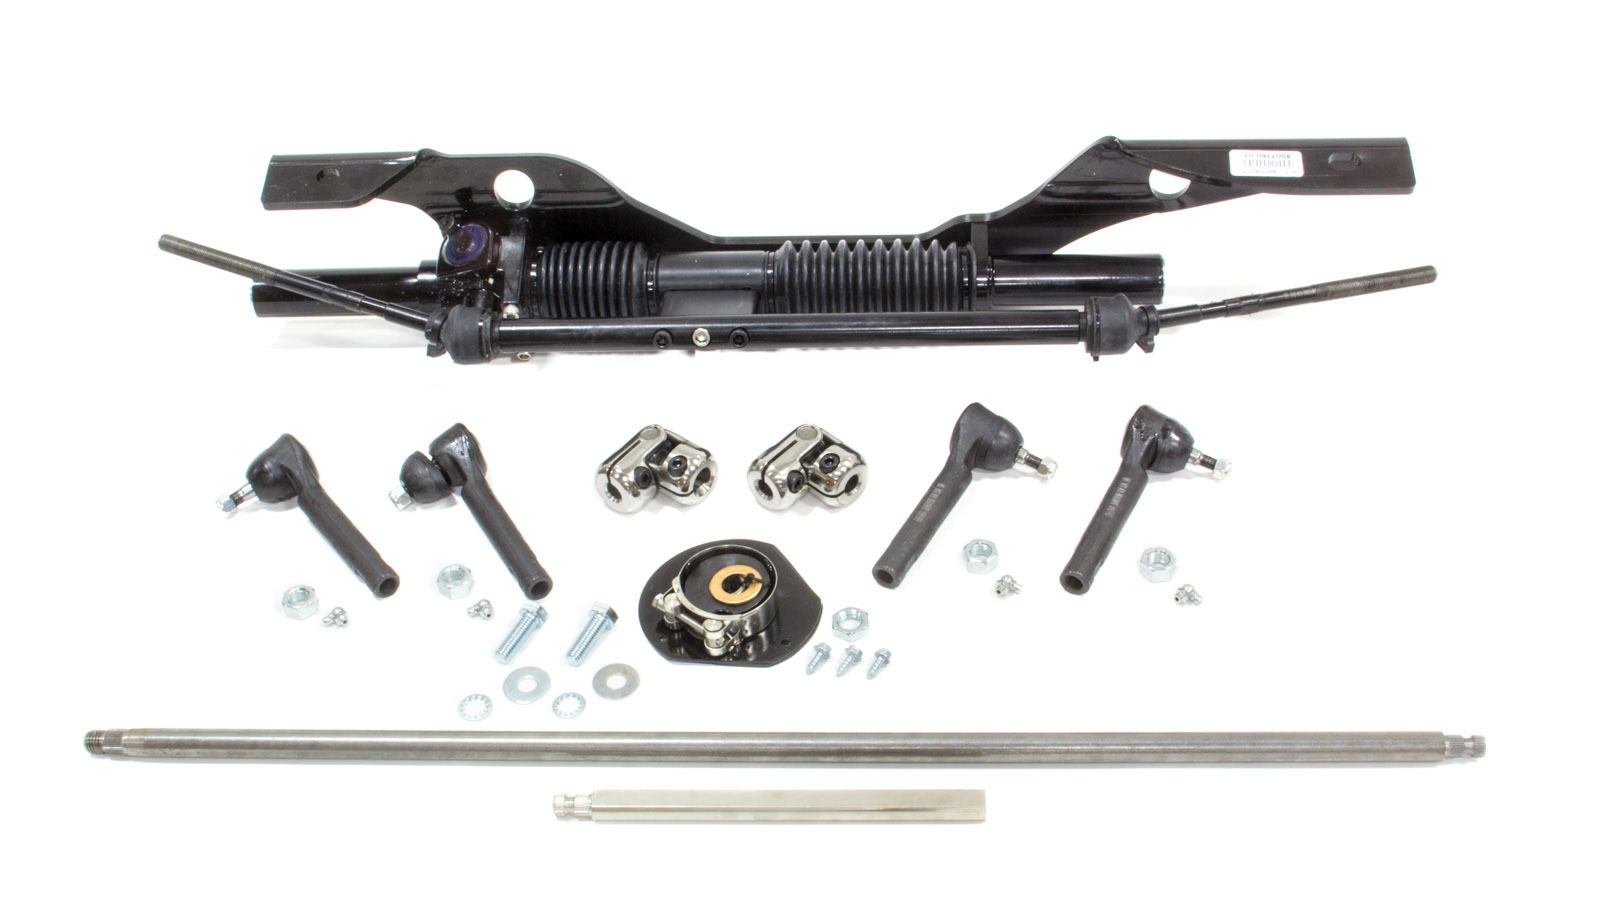 Unisteer Performance Products 8001110-01 Rack and Pinion, Manual, Aluminum, Black Powder Coat, Ford Mustang 1965-66, Kit